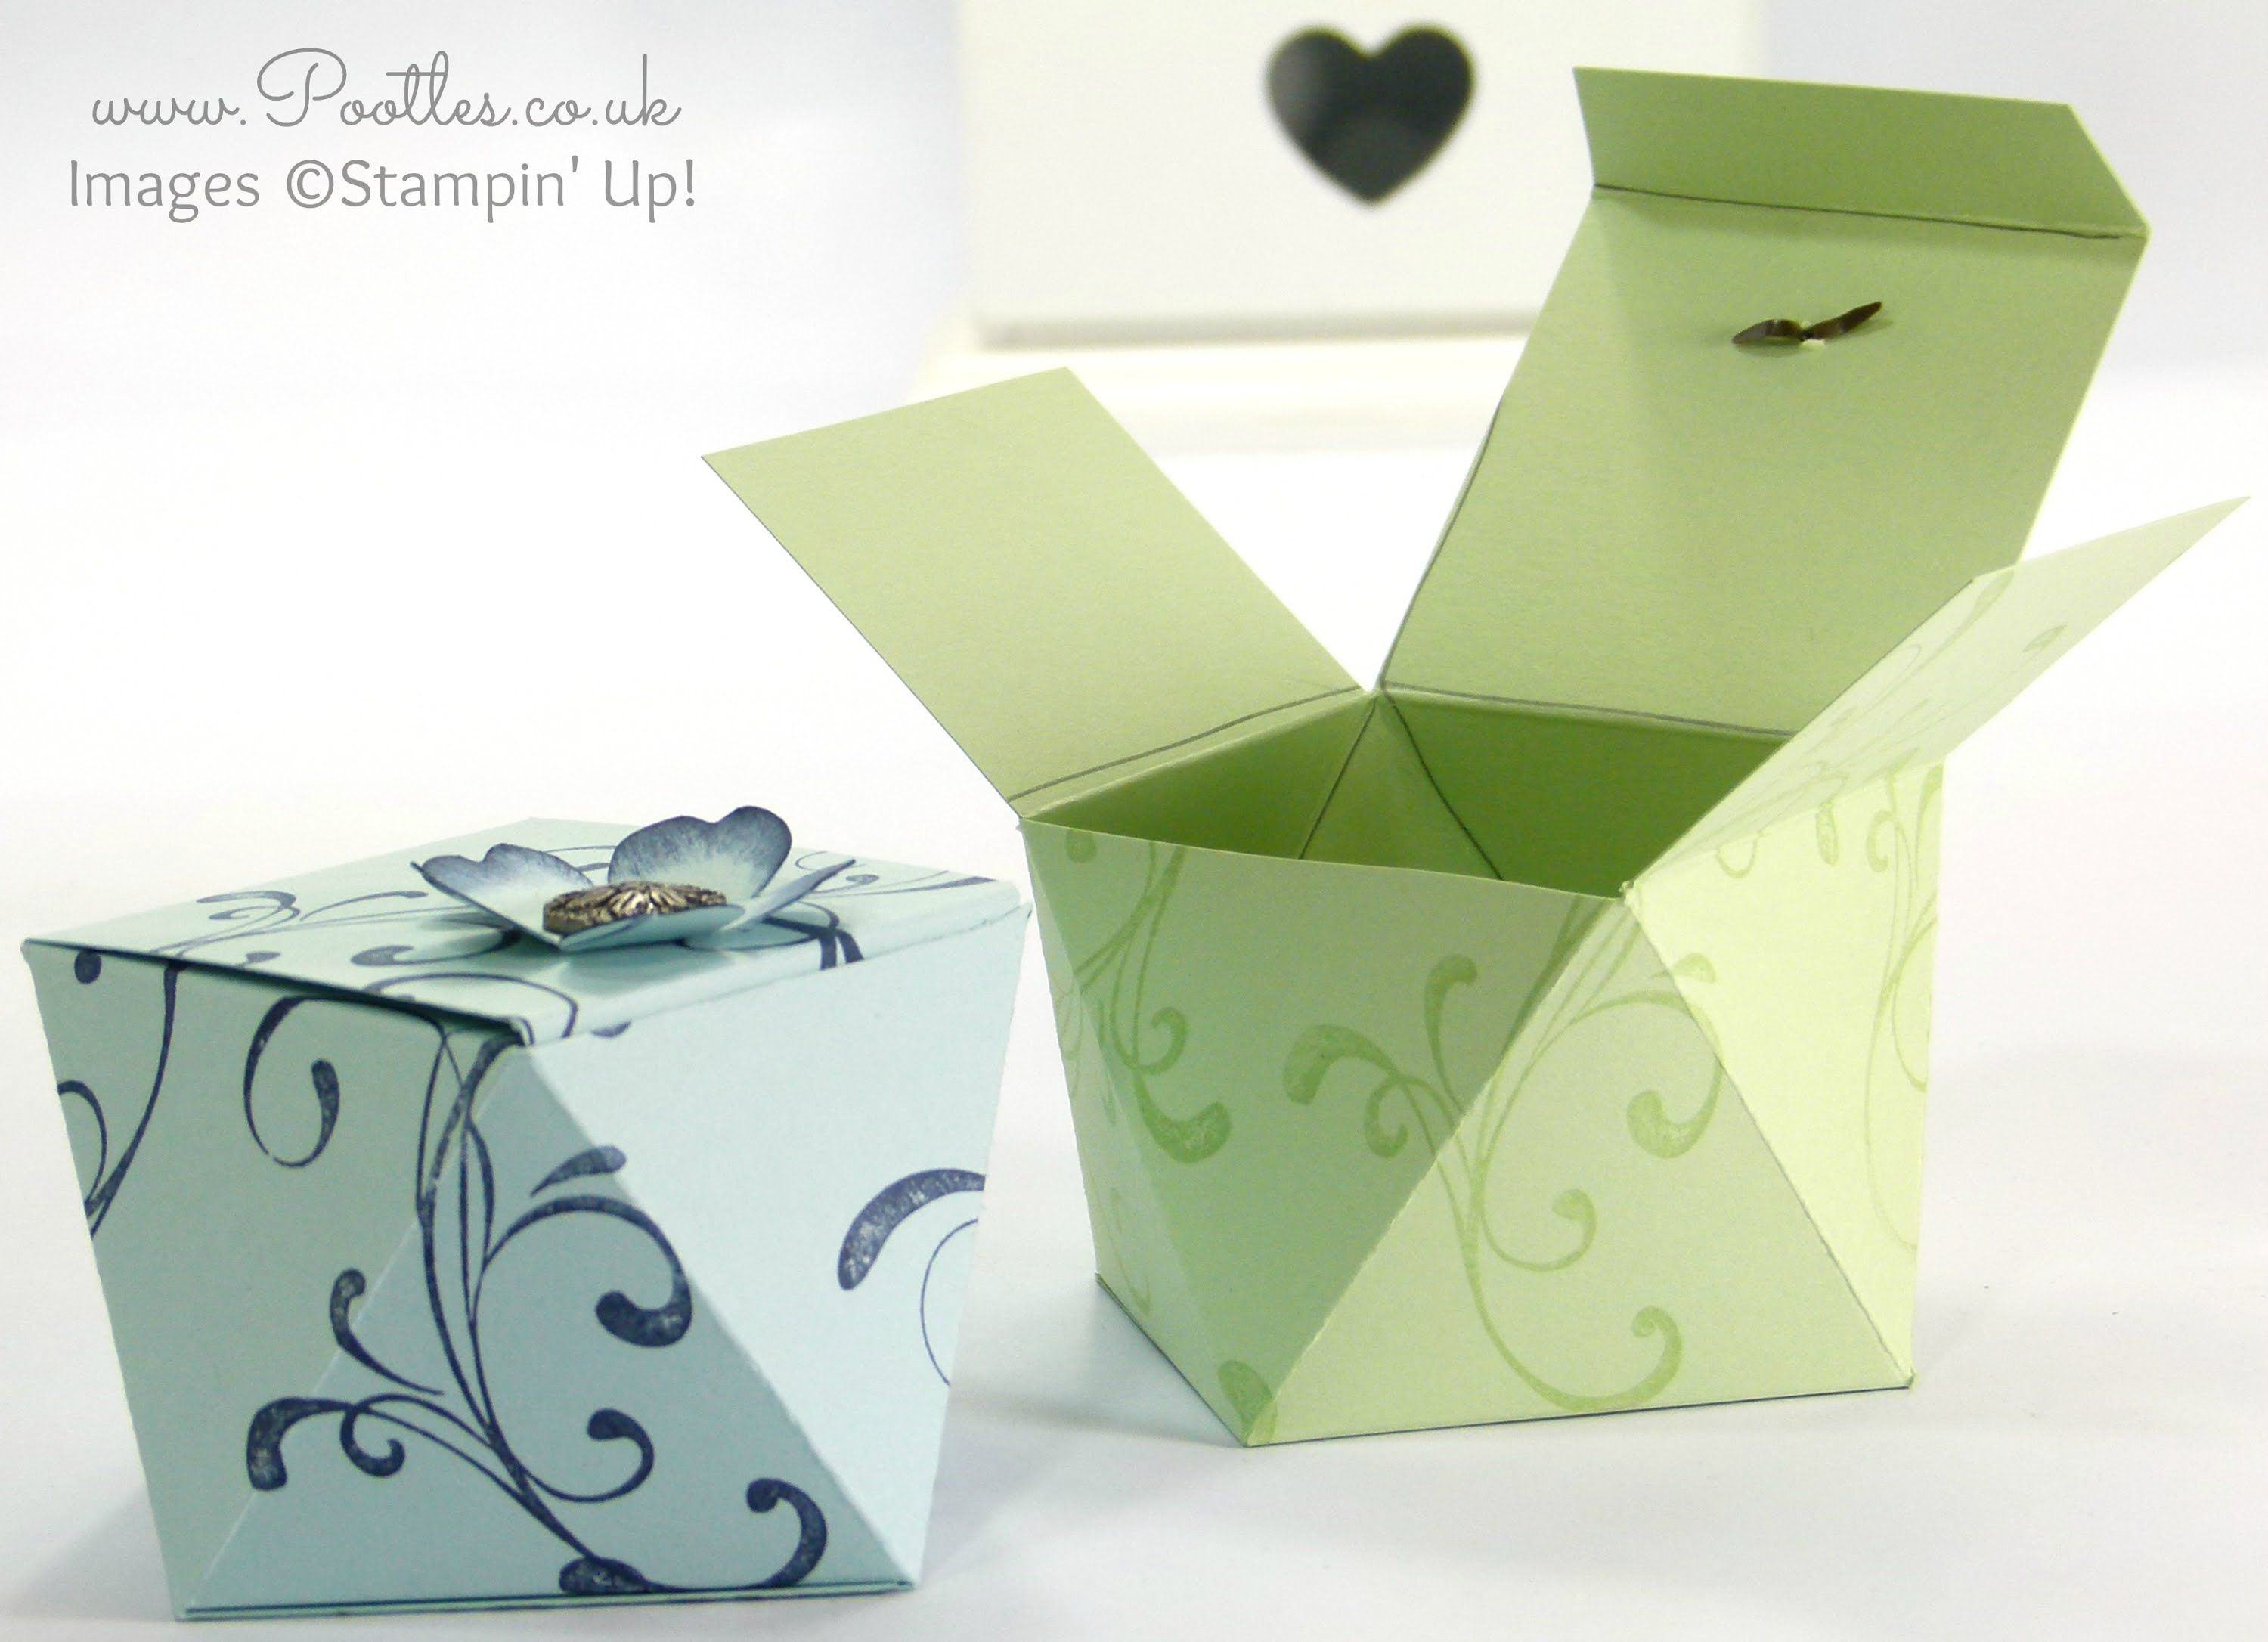 Faceted Gift Box Tutorial using Stampin' Up! Everything